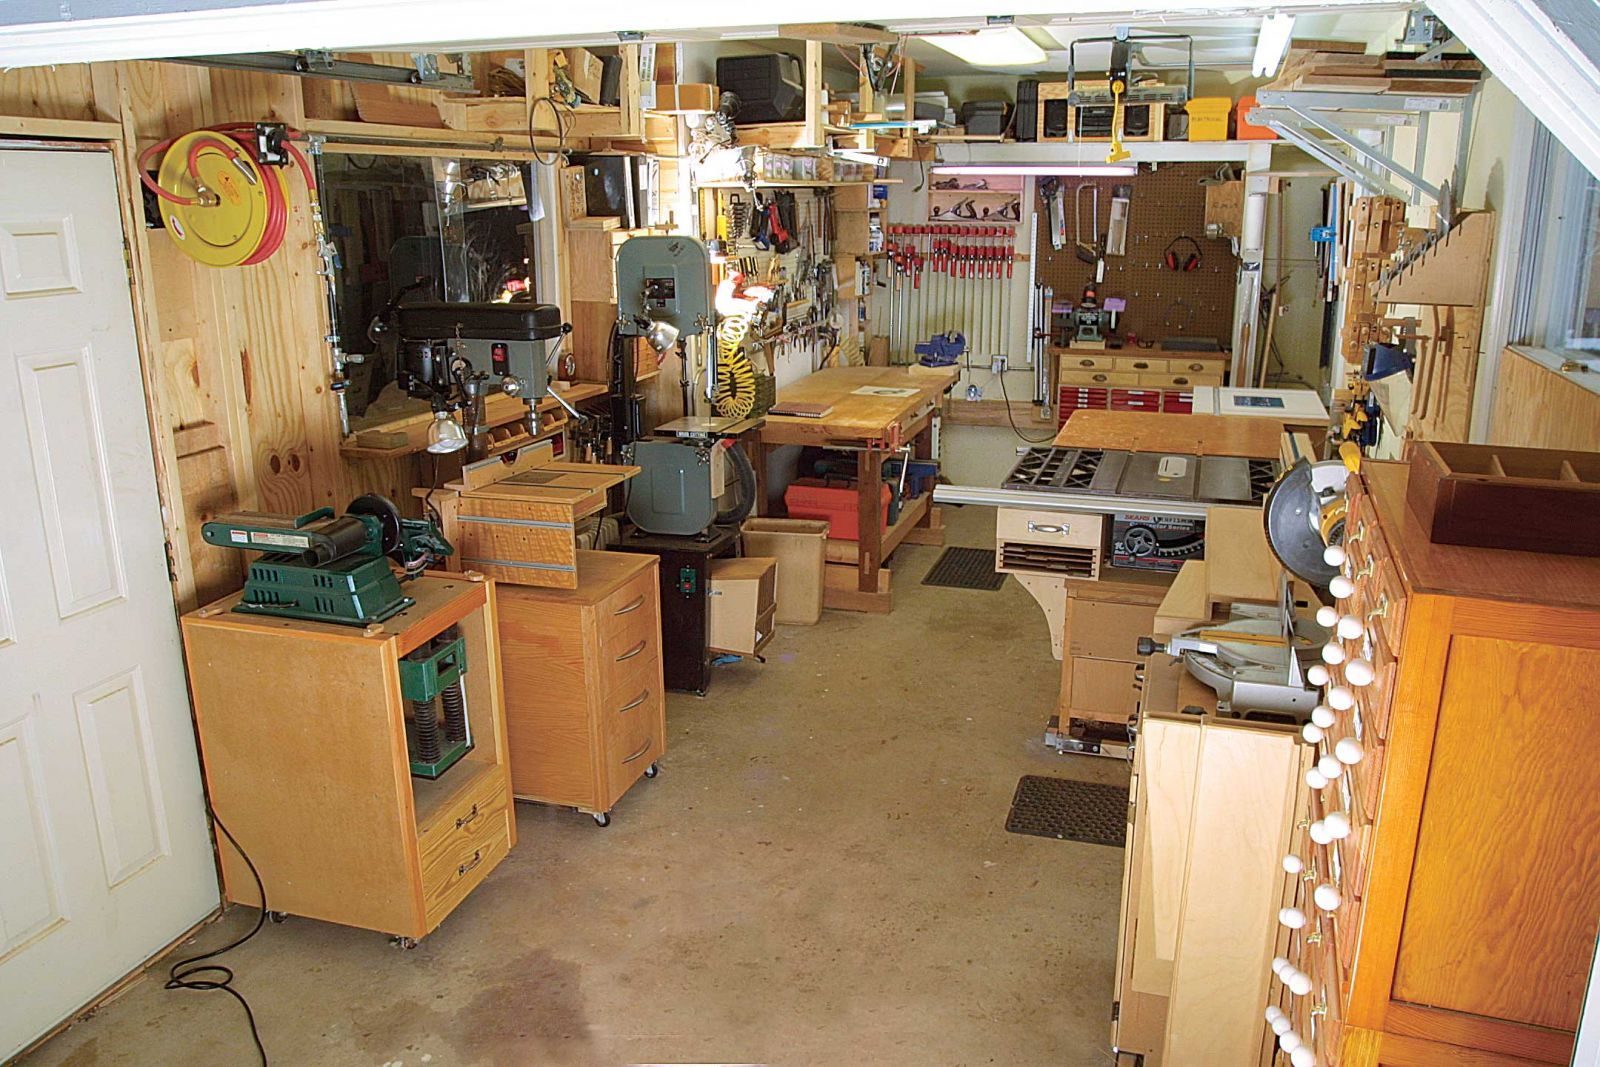 cf8de61616d43700c49c853a303c7e3a small woodshop layout ideas layout kit startwoodworking com,Home Woodshop Design